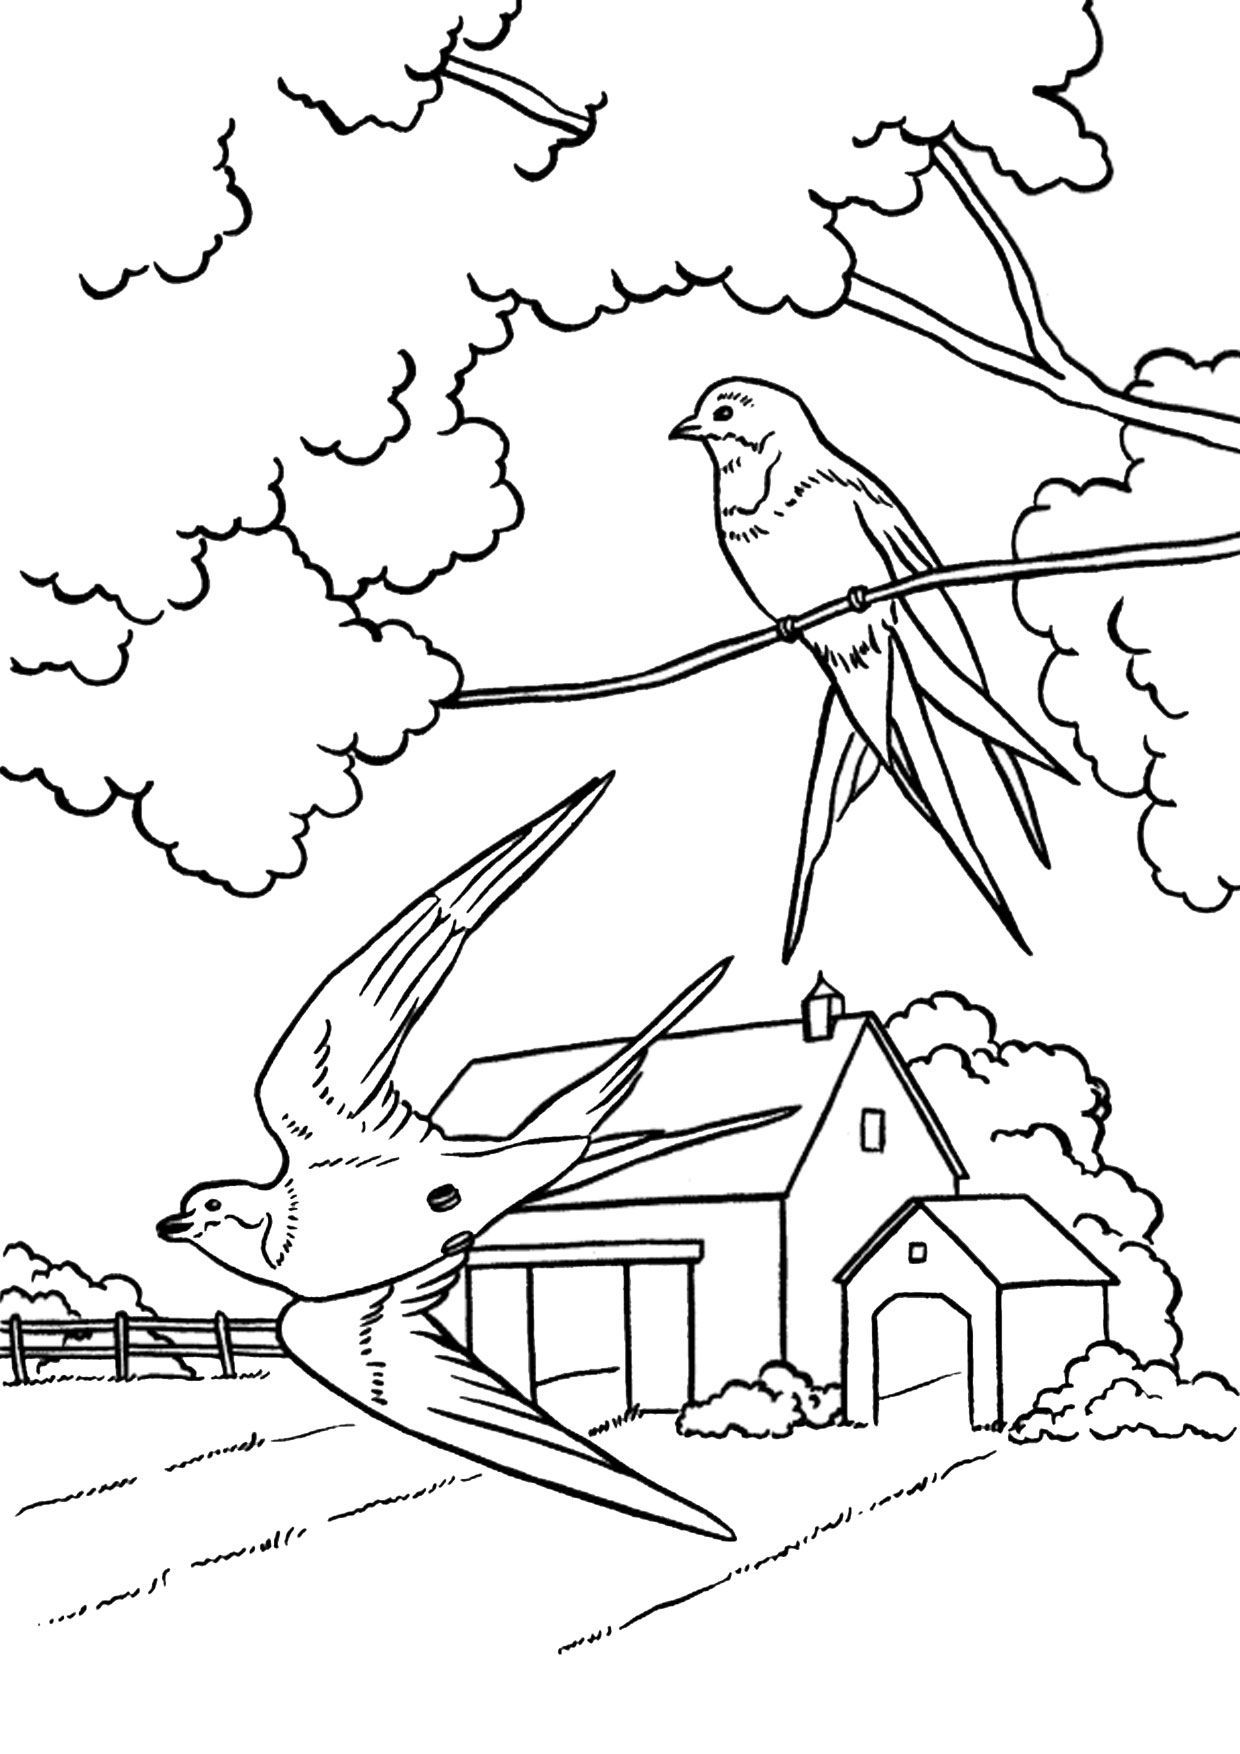 9 coloring pages of spring landscapes- 9 Disegni di Paesaggi